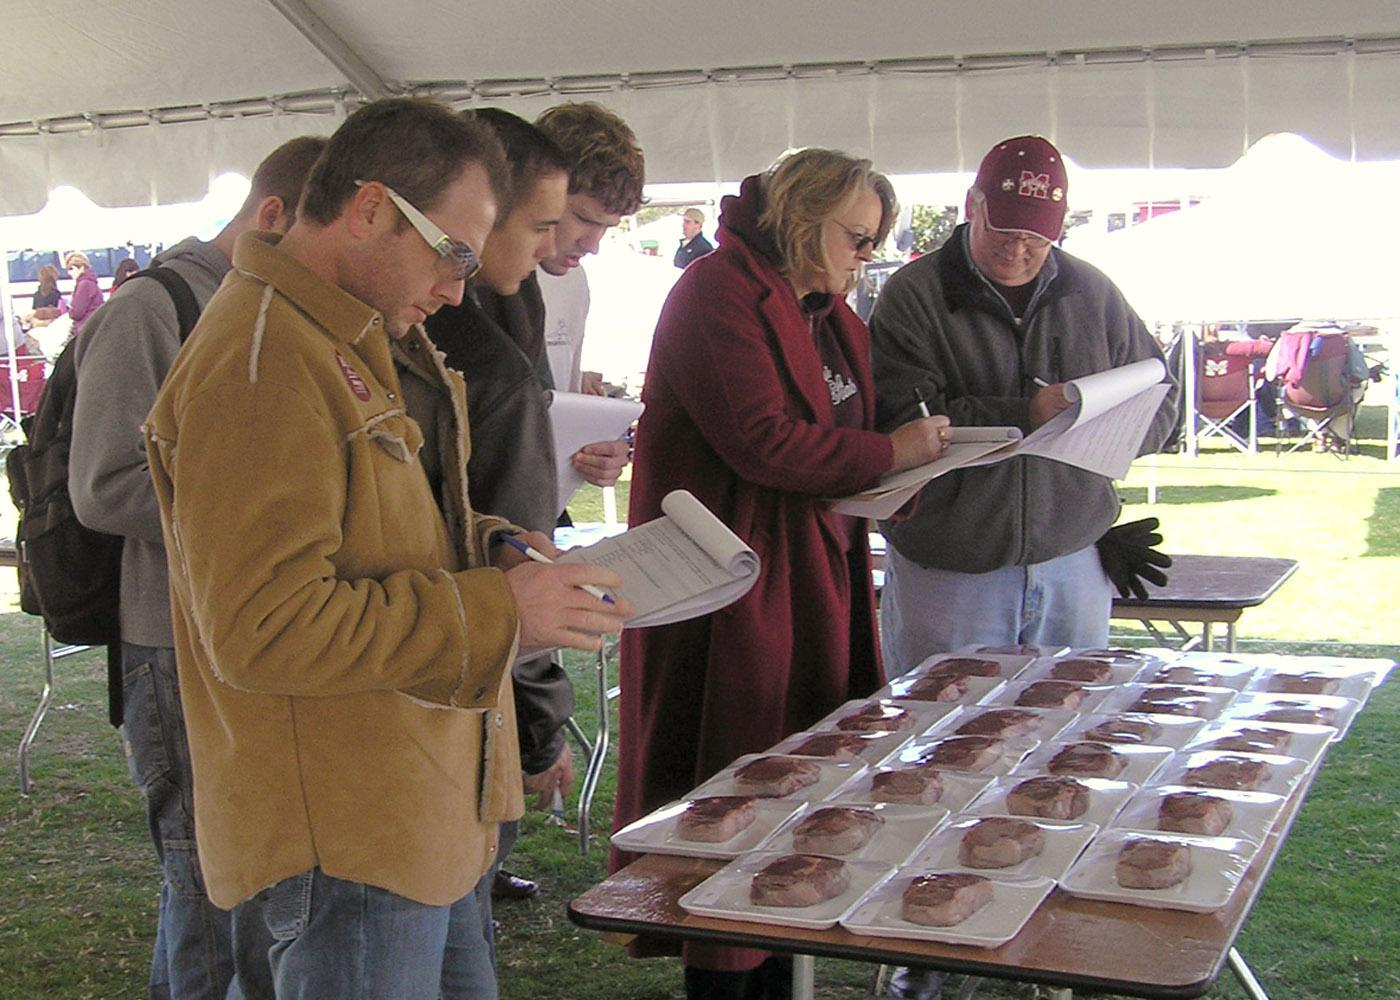 Participants in a Mississippi Agricultural and Forestry Experiment Station research project rate steaks displayed in Mississippi State University's Junction. The research team was gauging the public's willingness to pay extra for a thicker, heartier steak. (Photo by MSU Food Science, Nutrition and Health Promotion/Jason Behrends)